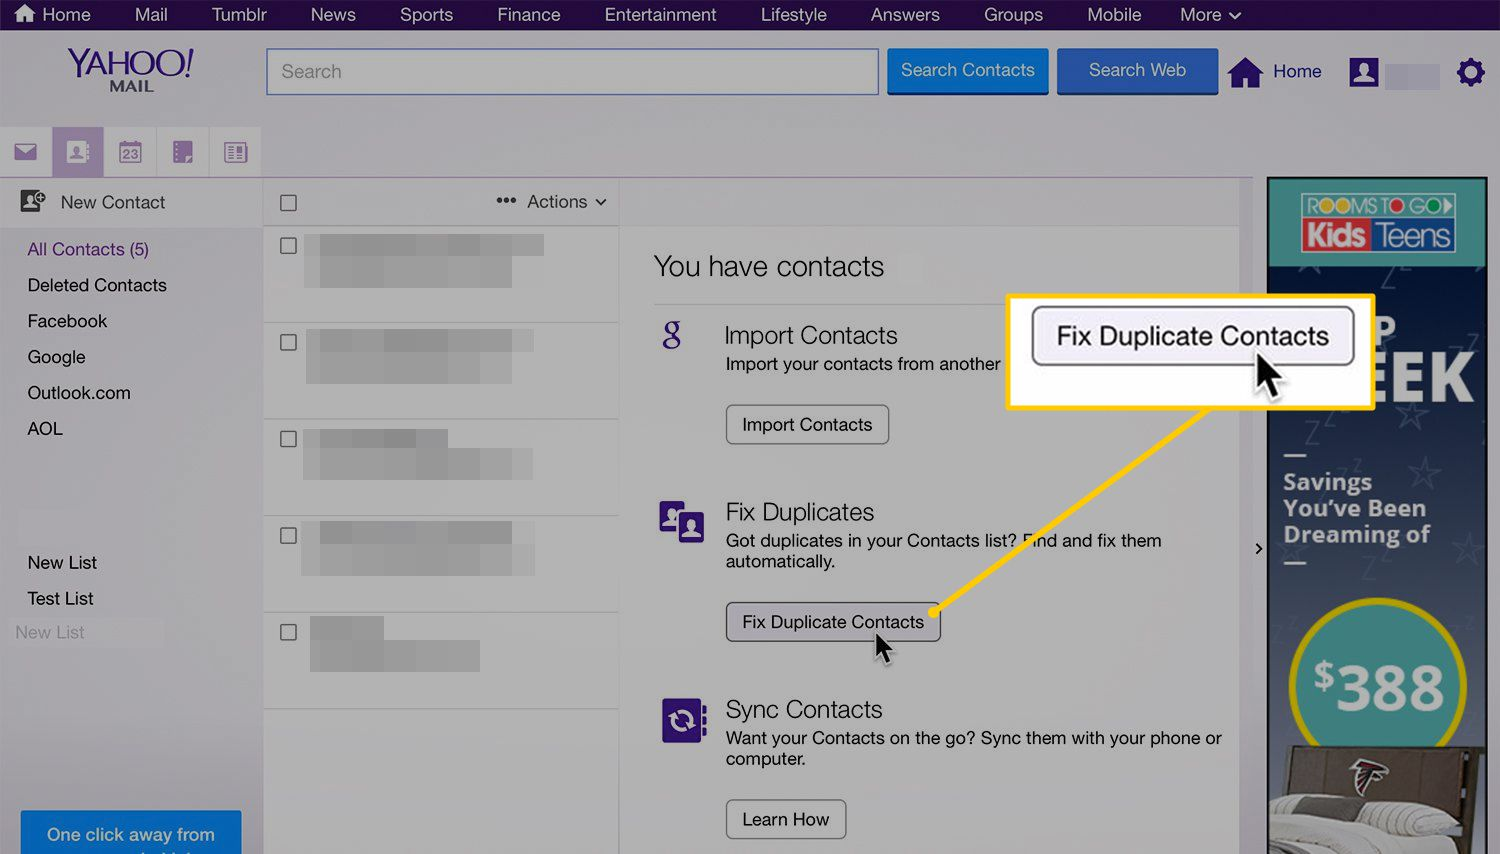 Fix Duplicate Contacts button on Yahoo!